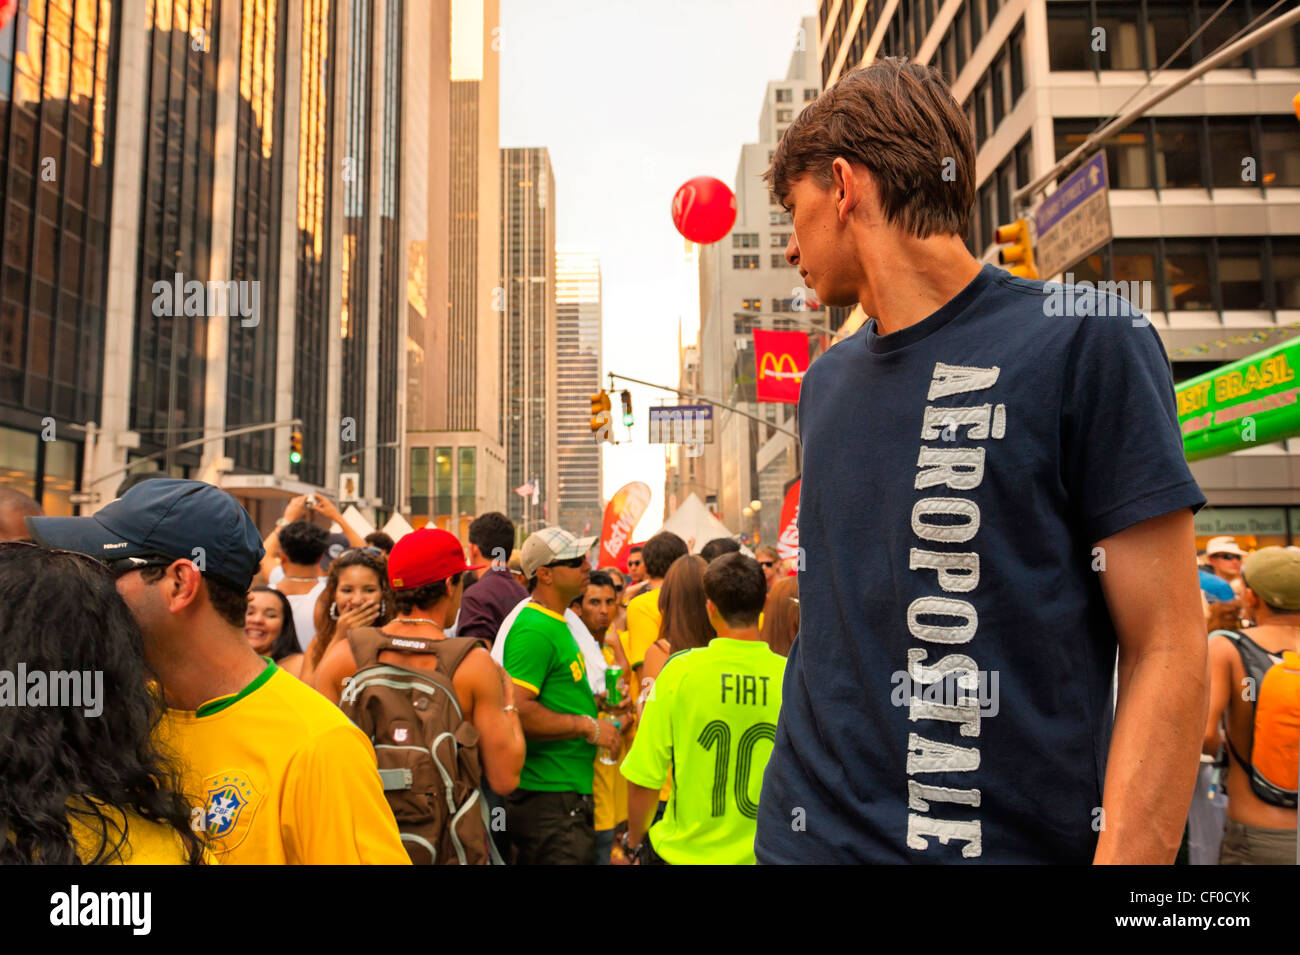 At Brazilian Day Festival, young man on stilts, in Little Brazil, New York City, NY USA, on August 31, 2008. - Stock Image